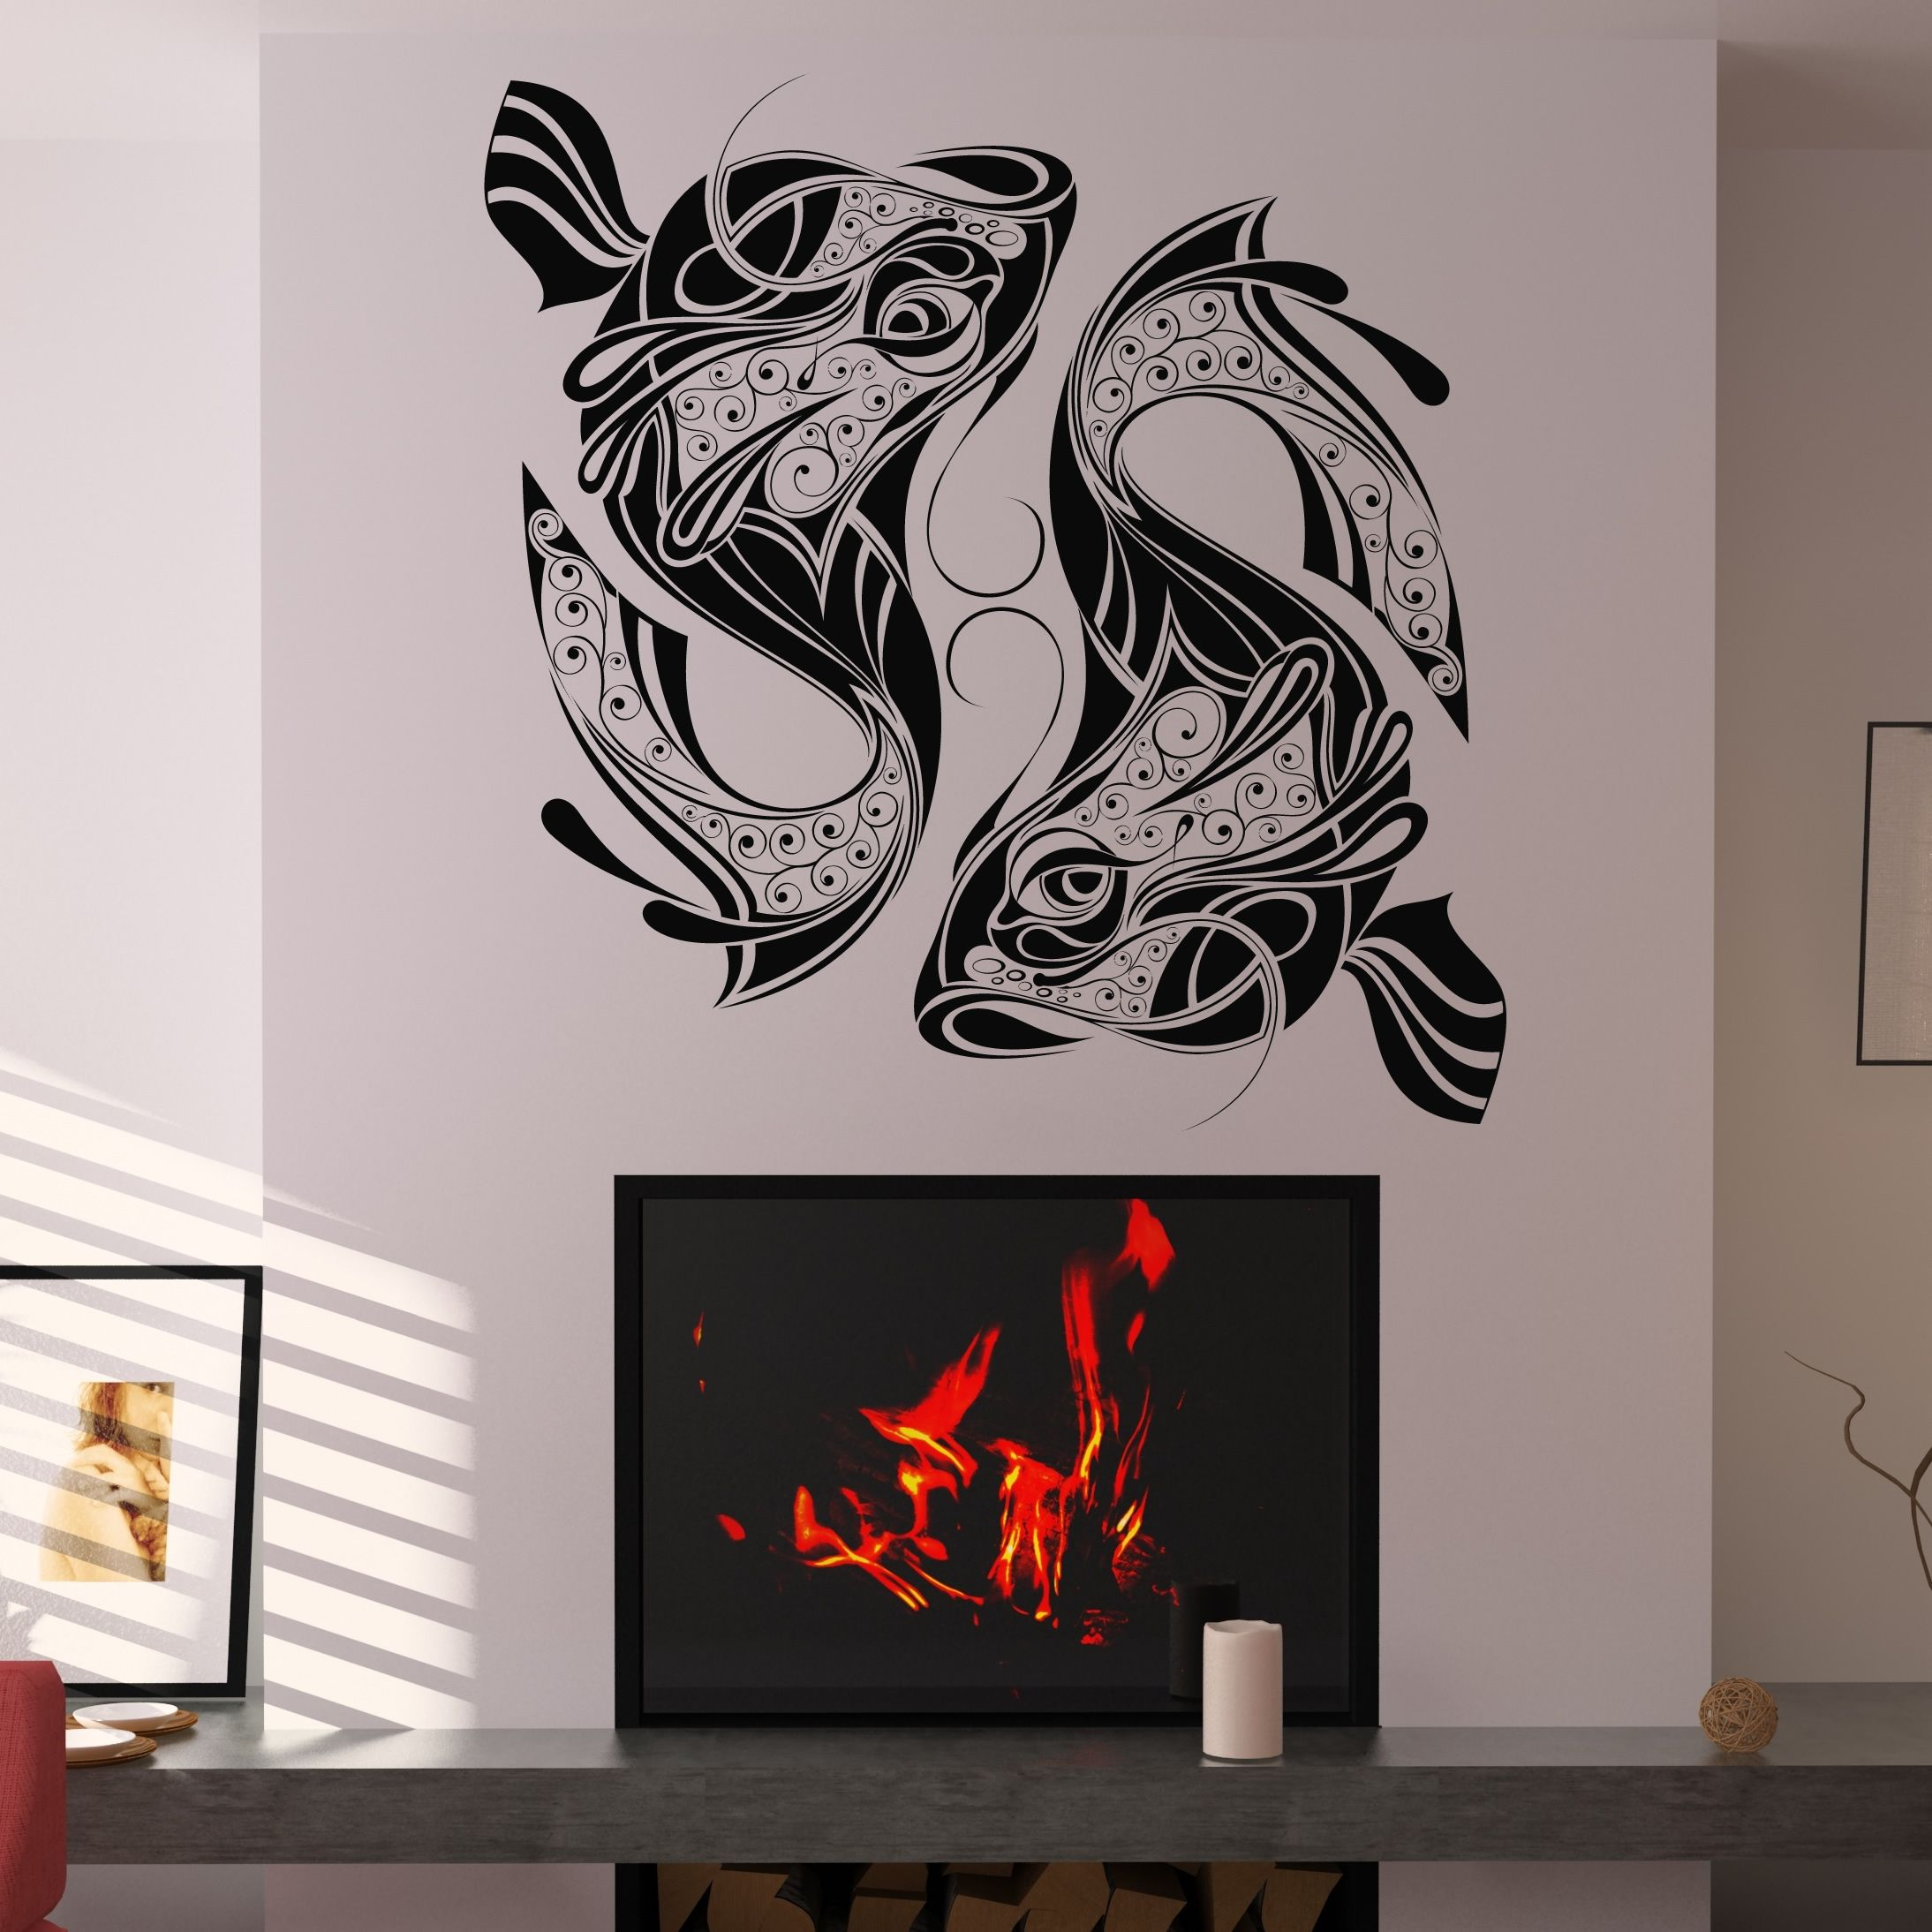 cheap sticker wall decor buy quality sticker round directly from china sticker eyes suppliers top selling vinyl removable wall decal diy home decor two